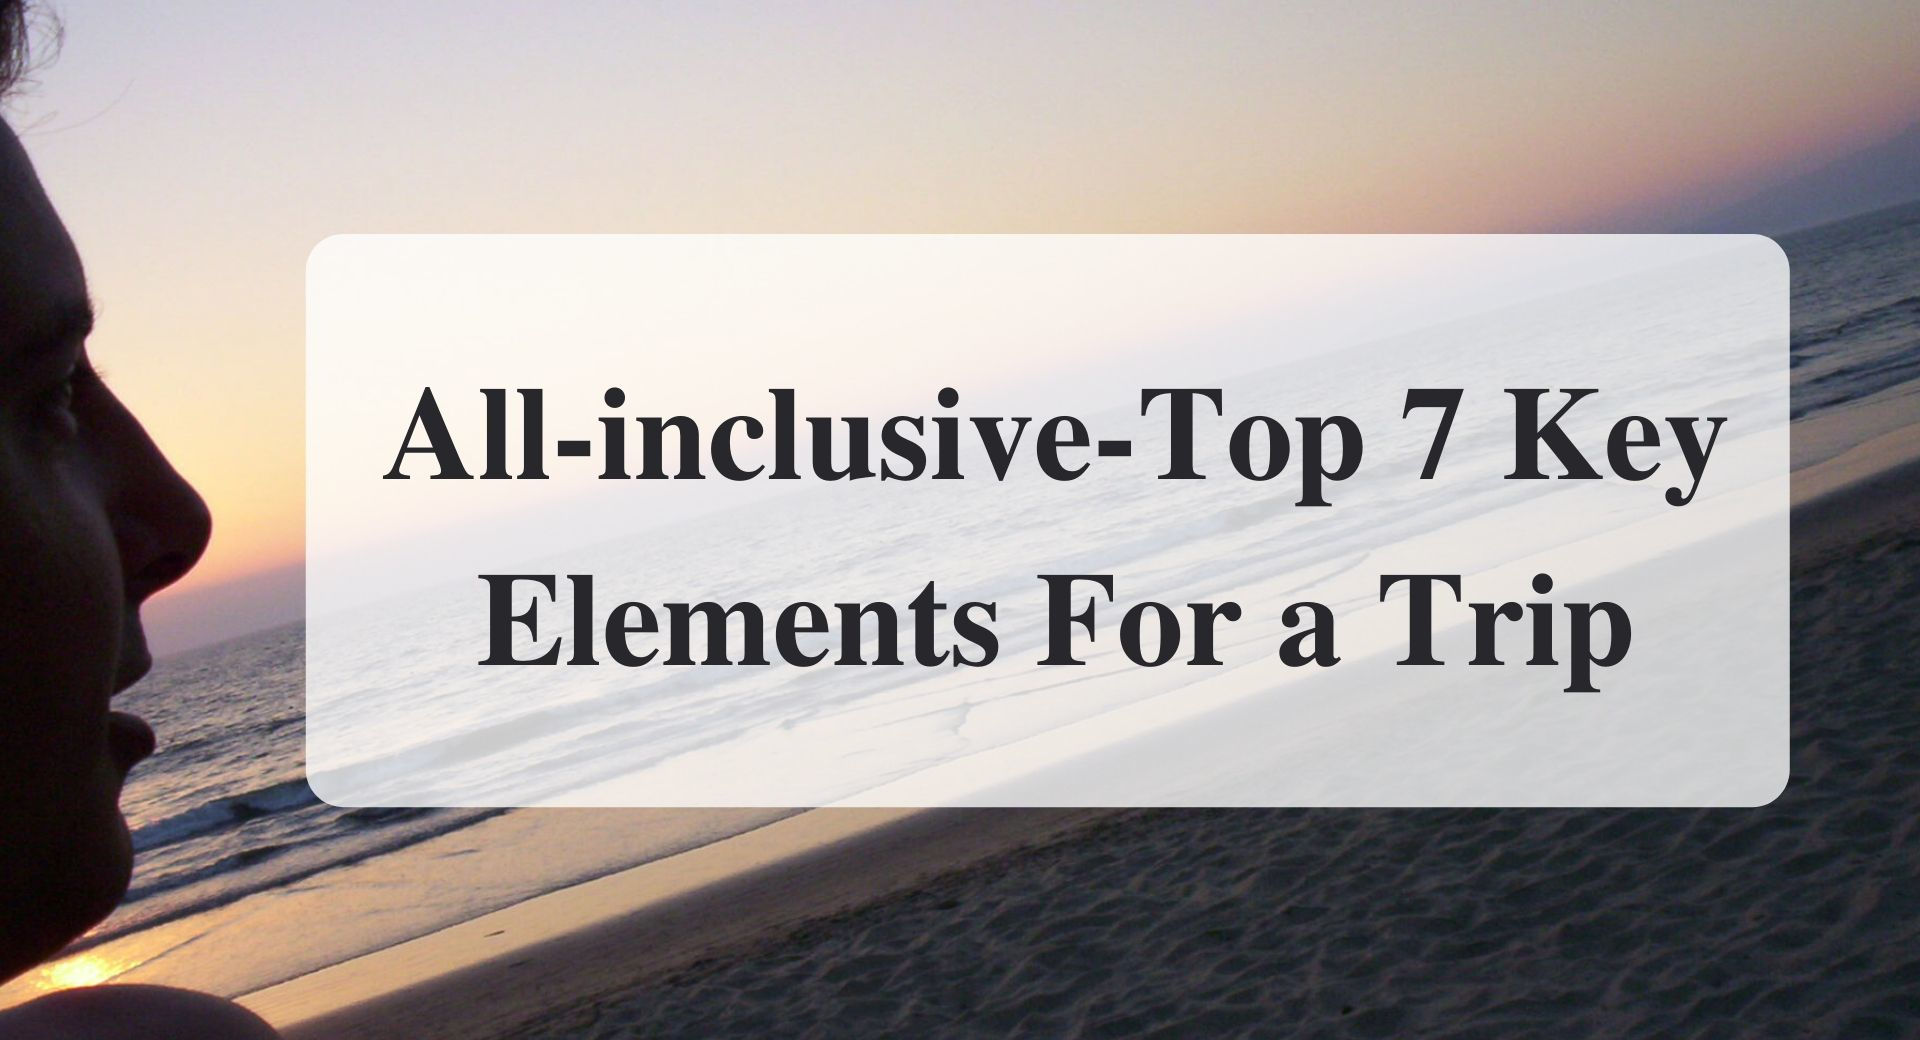 All-inclusive-Top 7 Key Elements For a Trip Forever sabbatical main